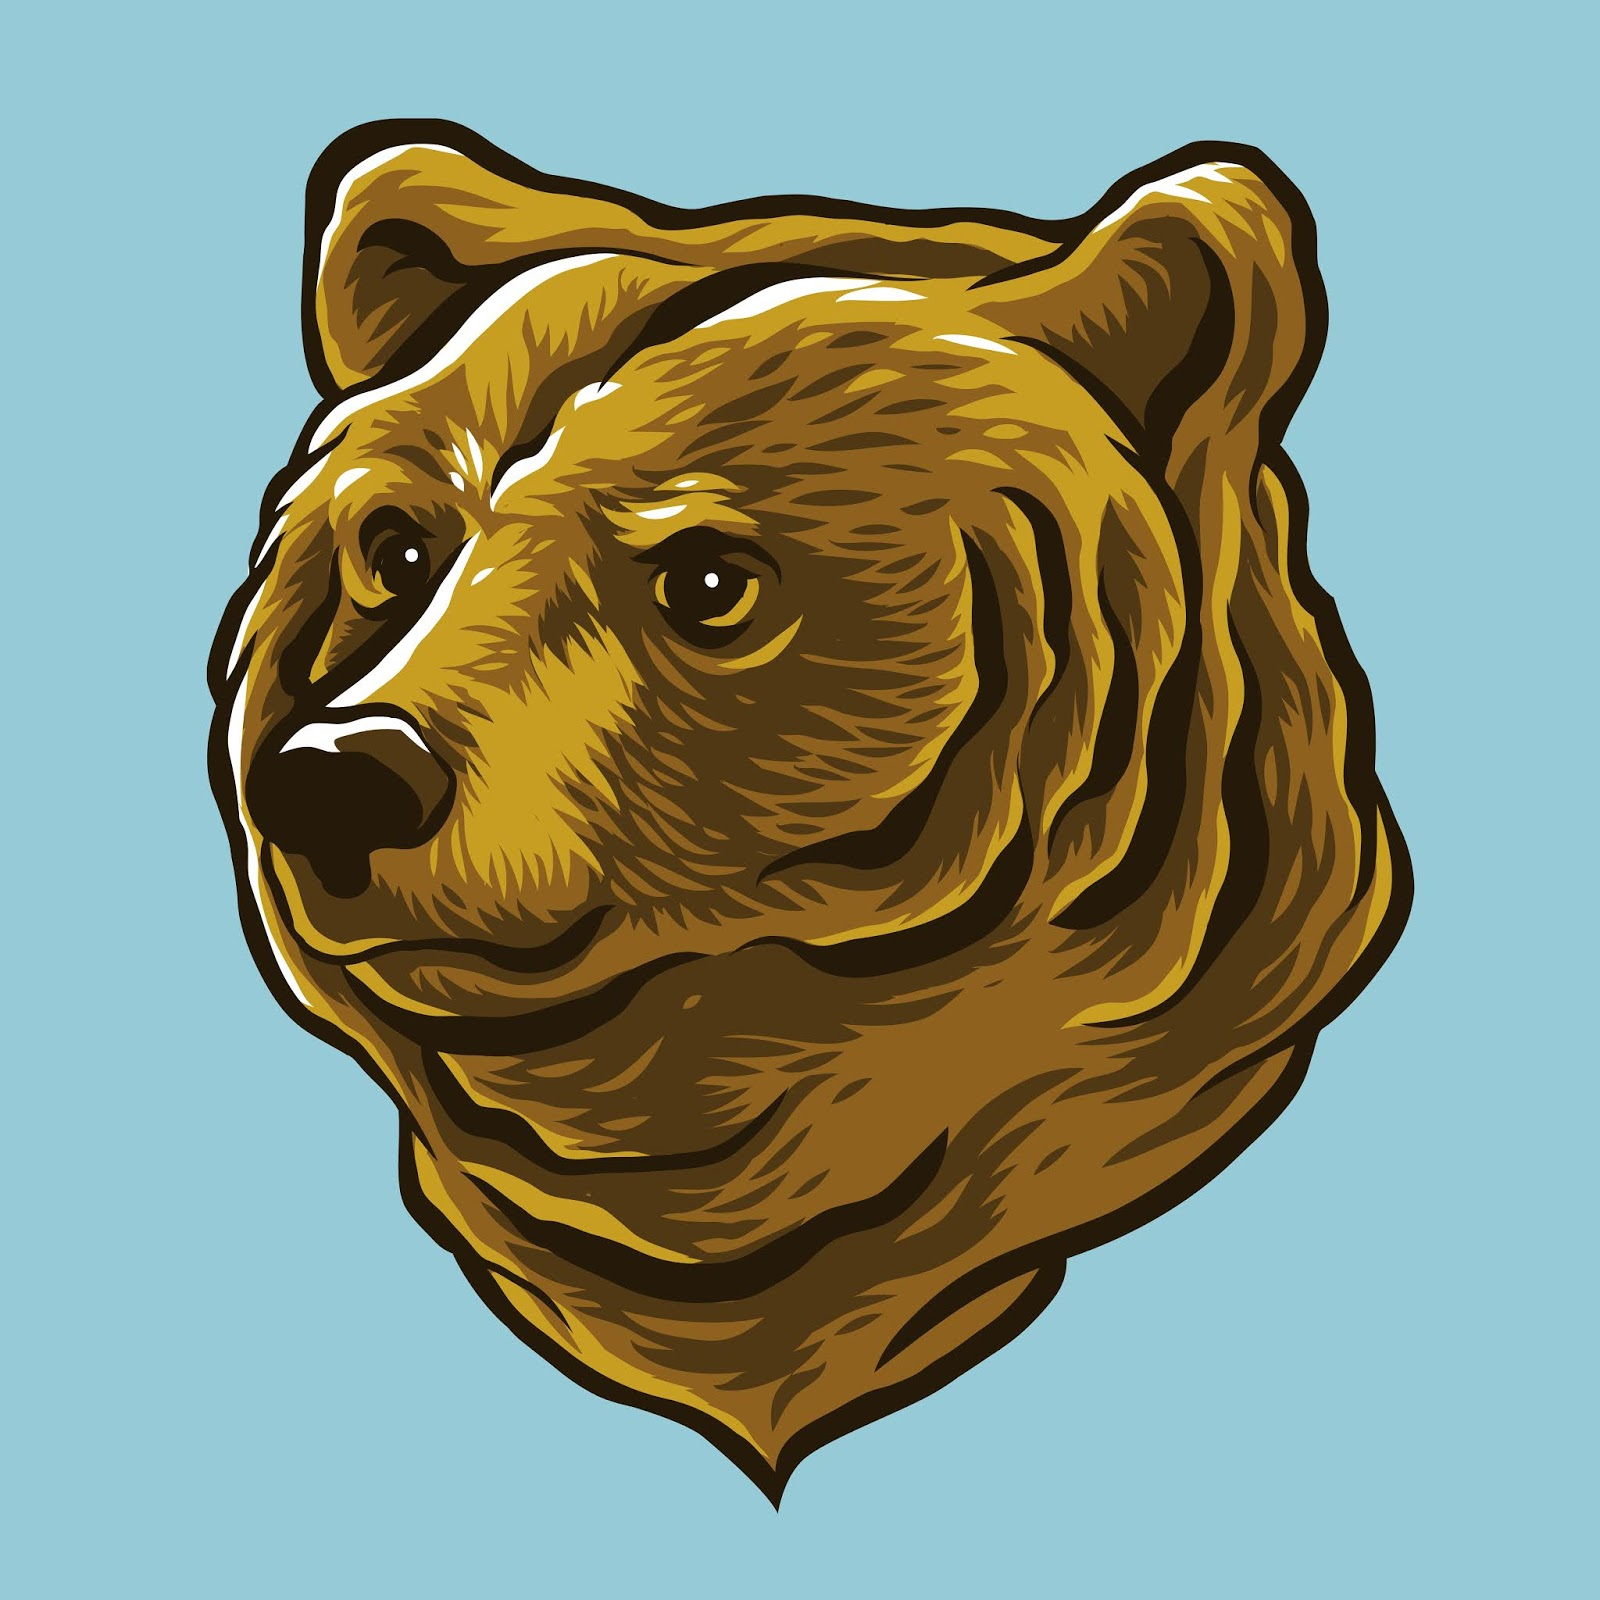 Hand Drawn Style Bear Head Illustration Free Download Vector CDR, AI, EPS and PNG Formats